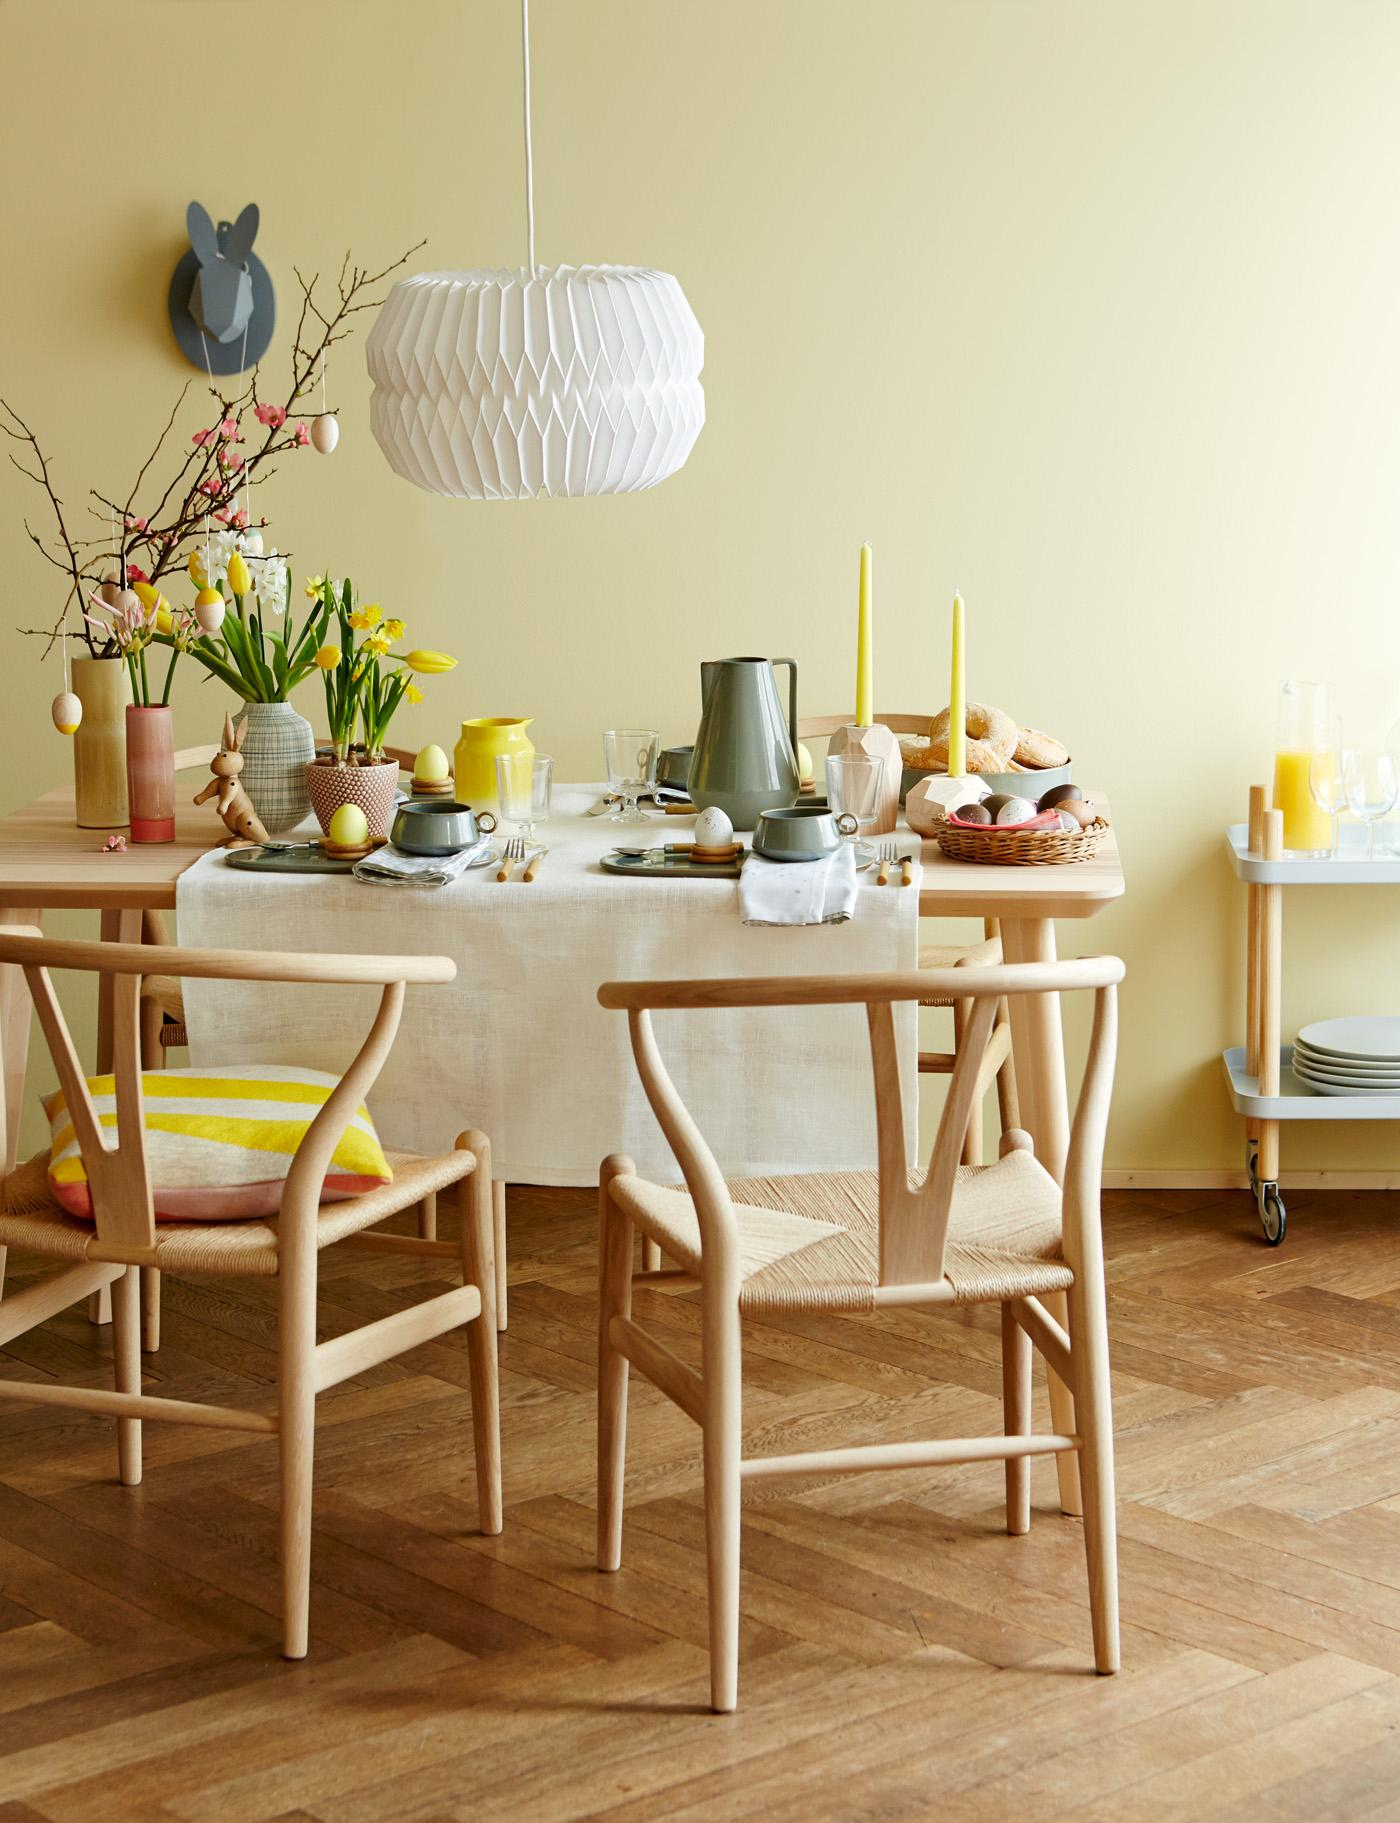 Ostertafel #pendelleuchte #osterdeko ©Living at Home/Julia Hoersch